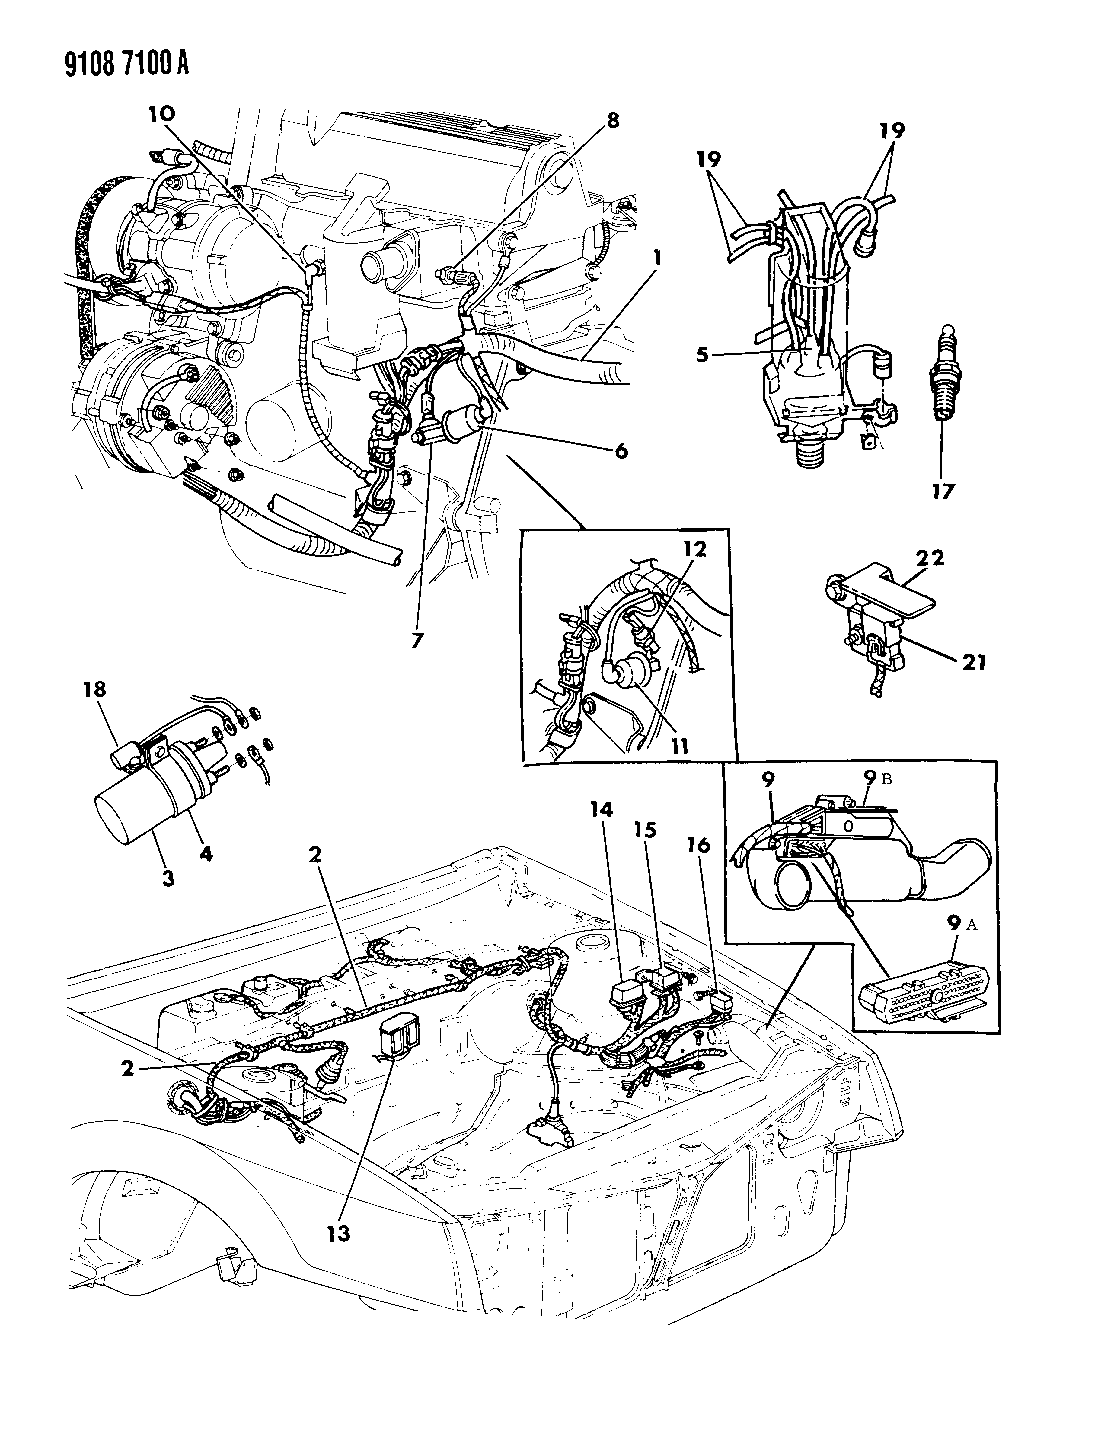 1989 Chrysler Lebaron Gtc Wiring - Engine